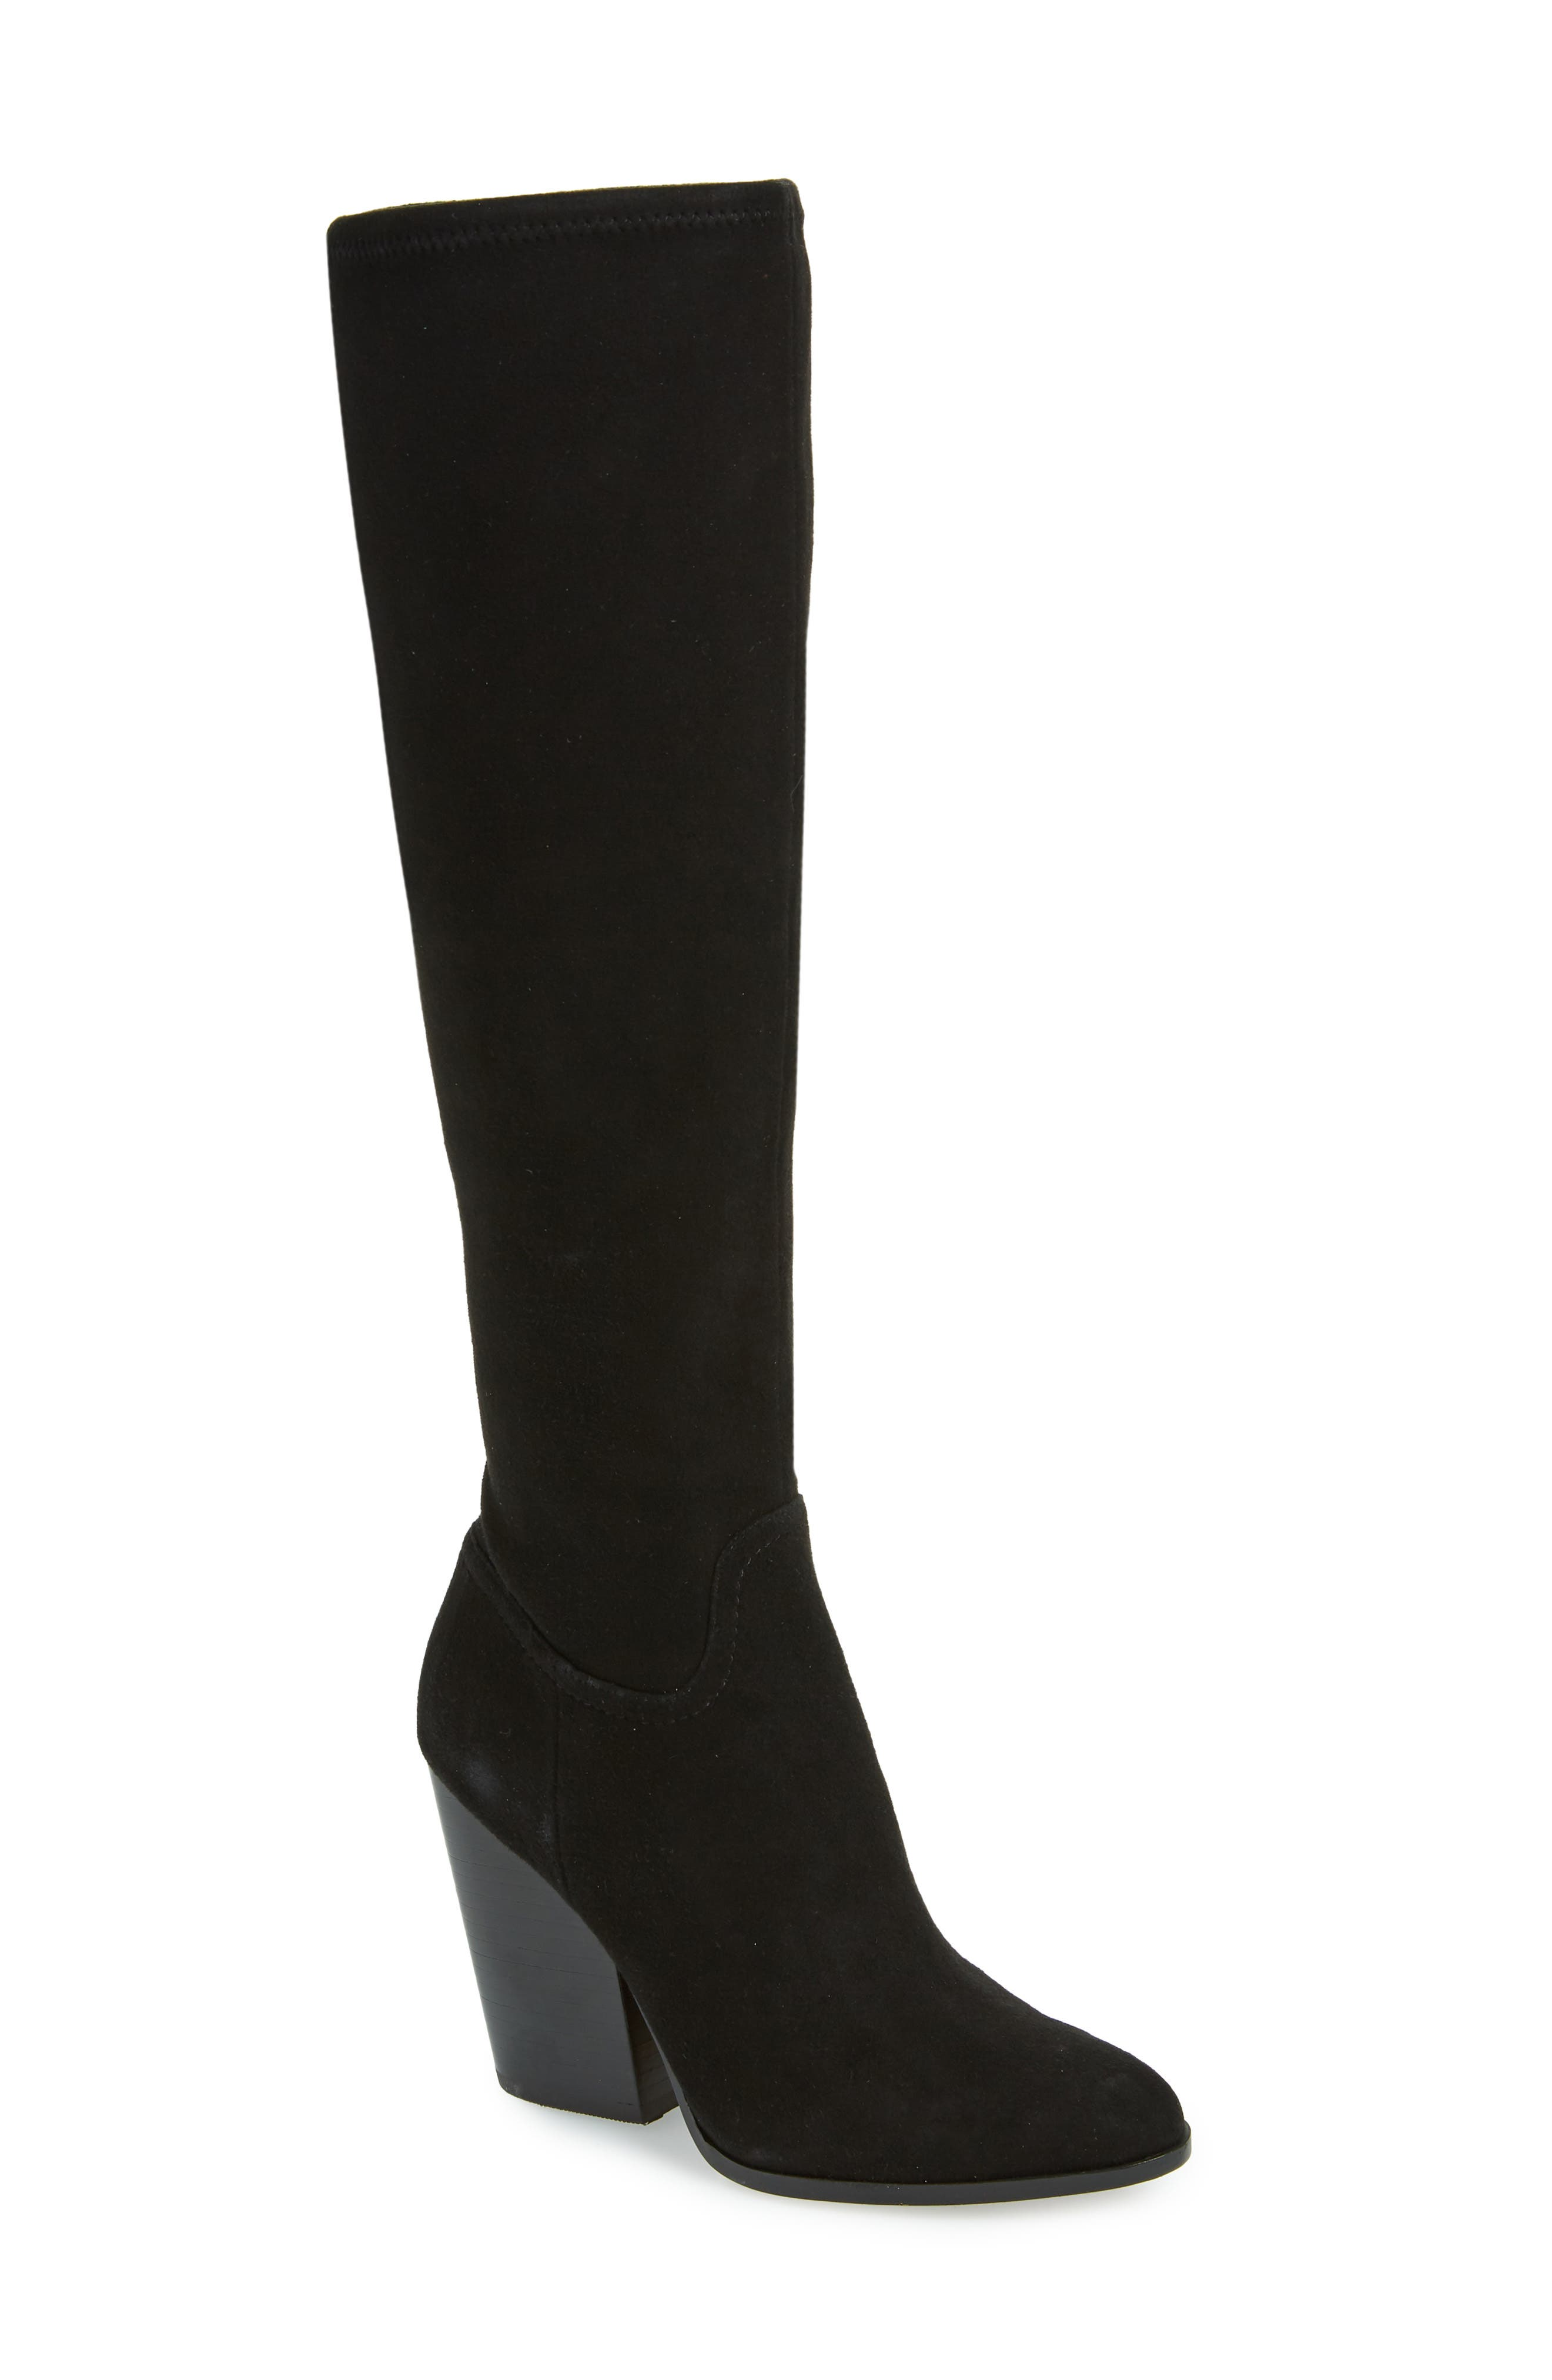 LINEA PAOLO Elena Knee High Boot, Main, color, BLACK STRETCH SUEDE